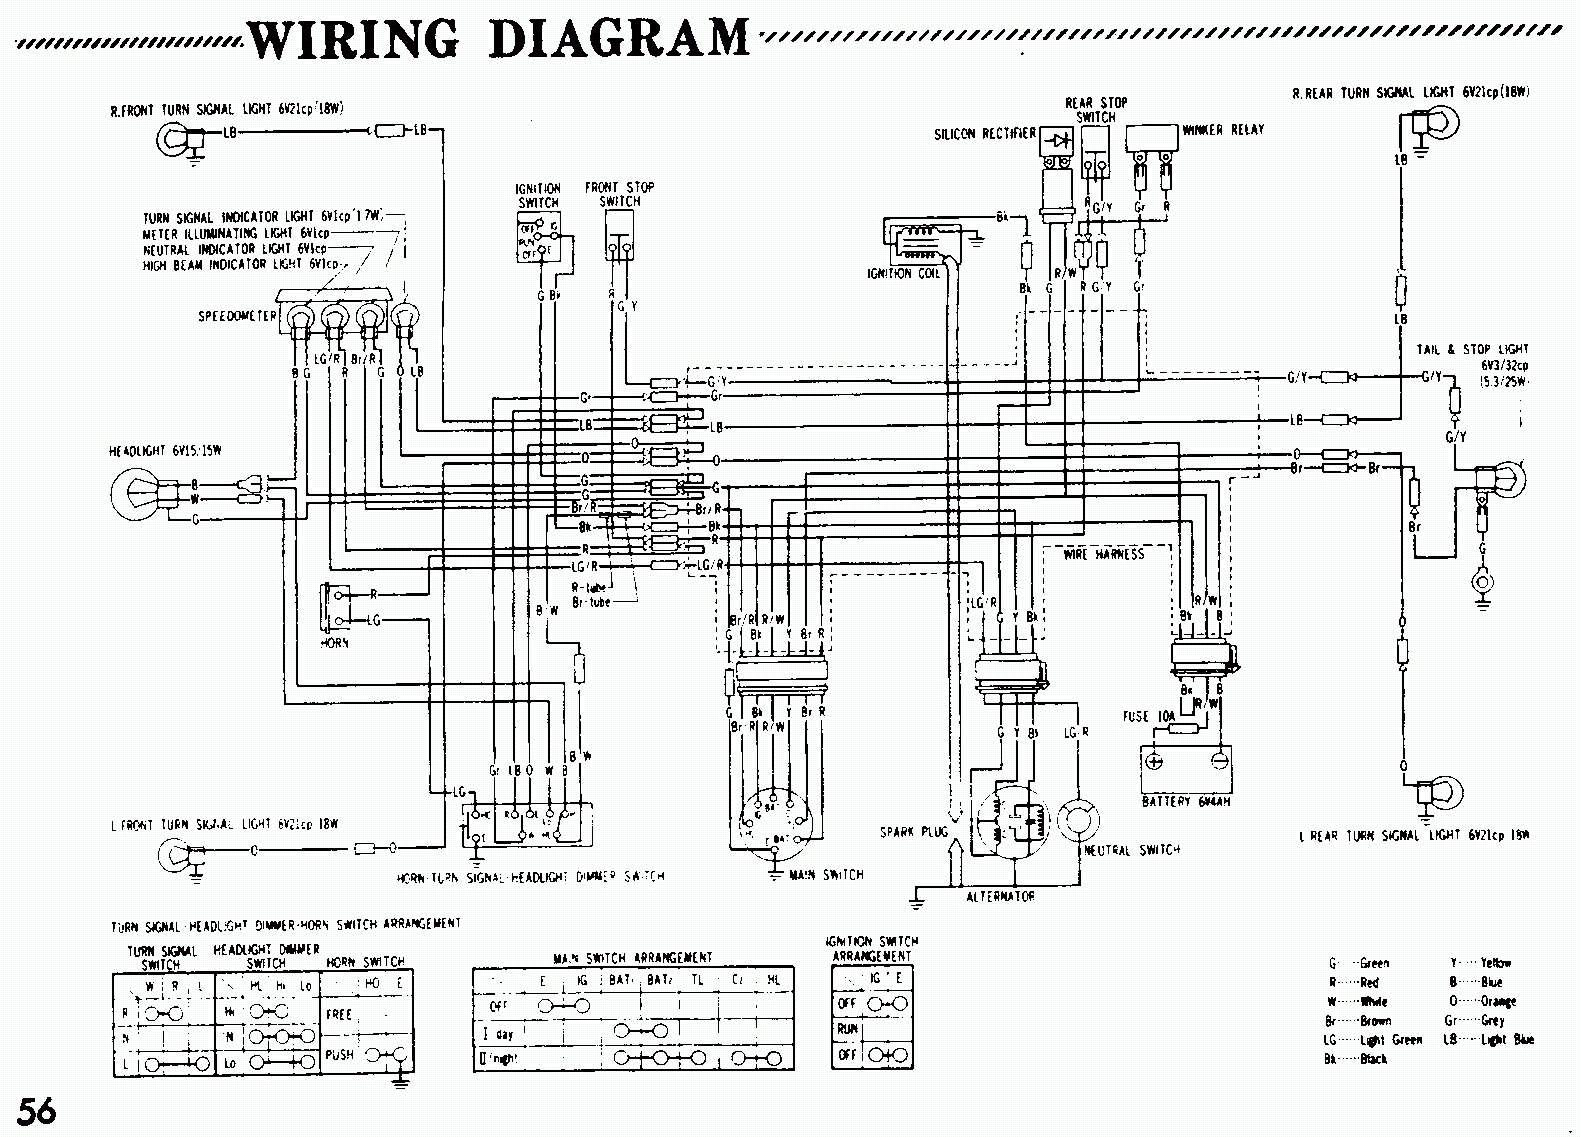 Honda Odyssey Fl250 Wiring Diagram - Wiring Diagram Article on